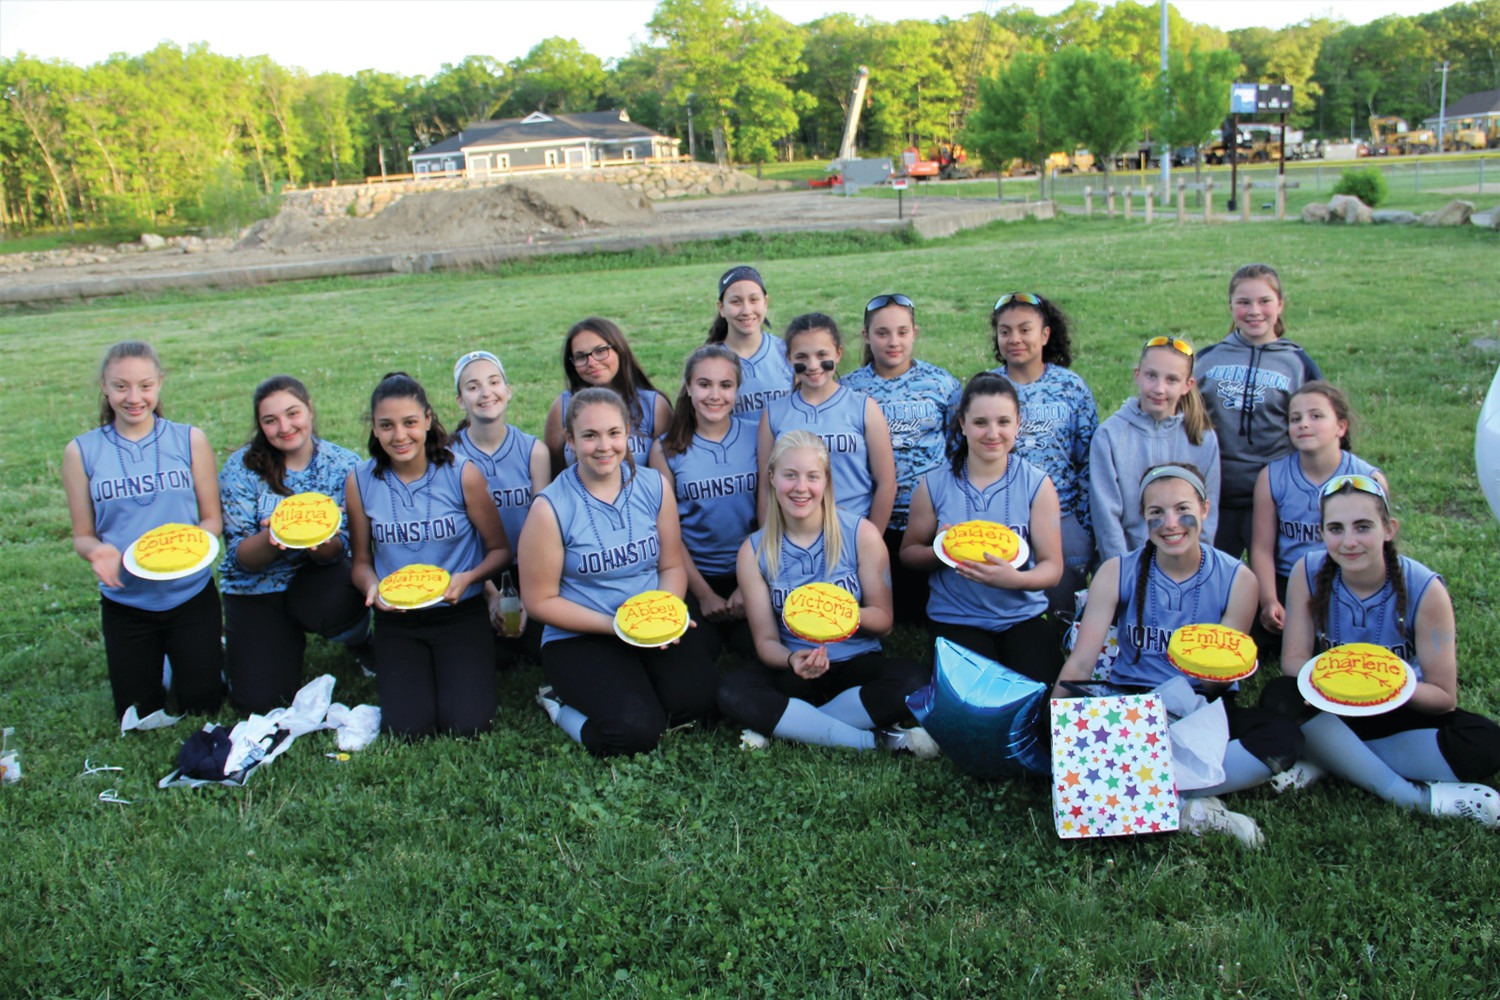 GROUP PIC: The Ferri Middle School softball team celebrated its 8th grade night during its final regular season game. The Ferri 8th graders showed off their celebratory cakes. Pictured from left: Courtni Beaulieu, Milana Melvin, Gianna Robinson, Abigail Alviti, Victoria Winsor, Jaiden Tonucci, Emily Iannuccilli and Charlene Hohlmaier (Submitted photo)